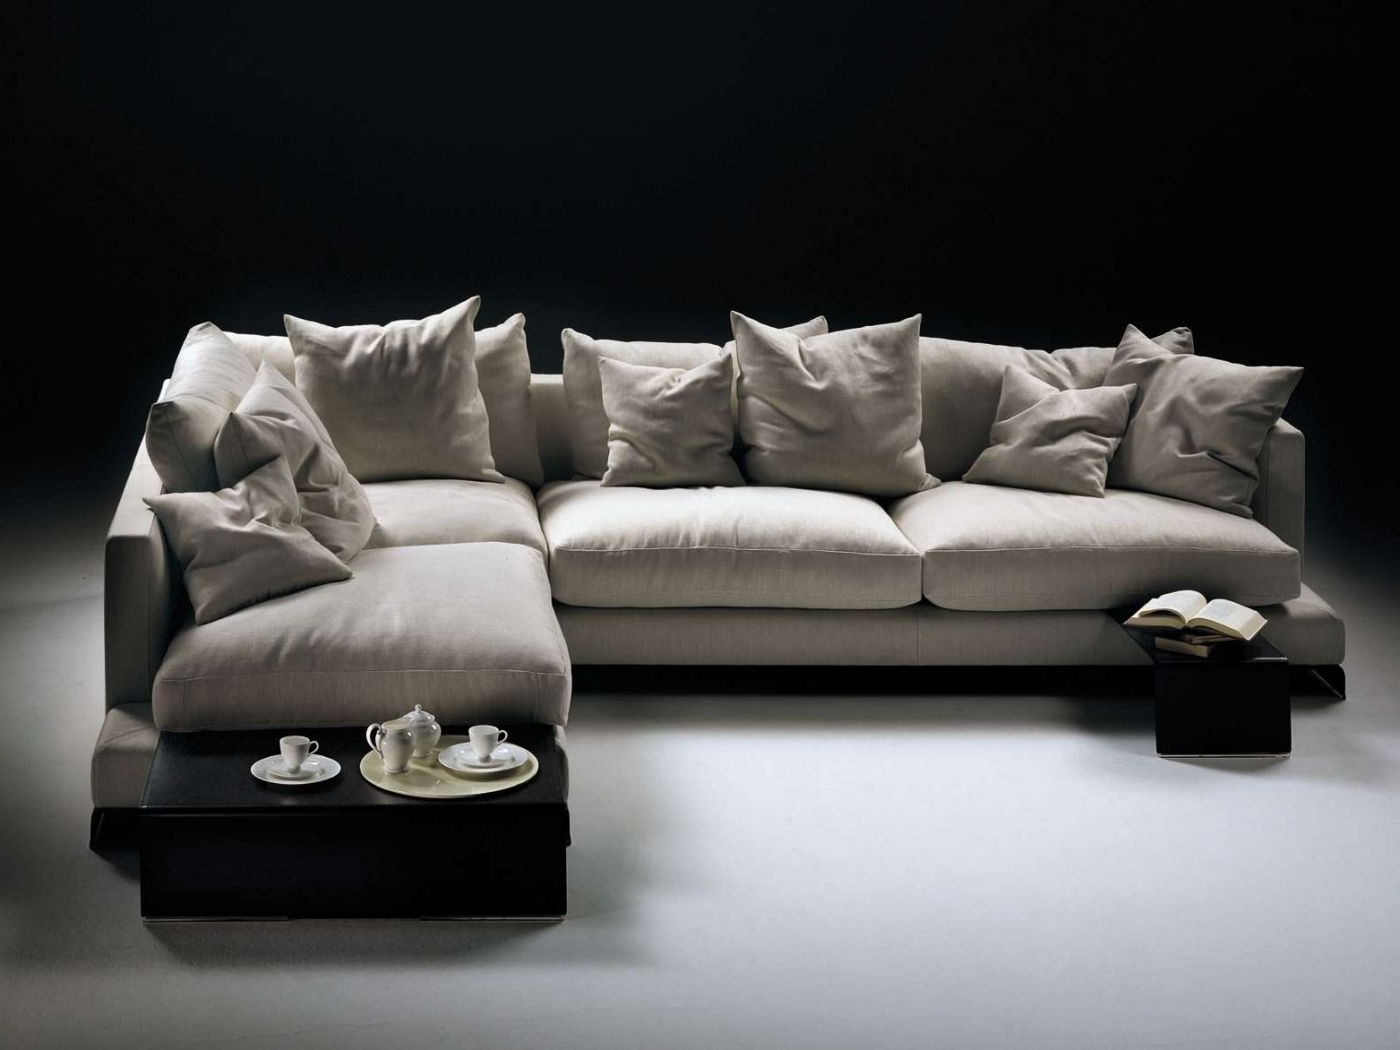 Best And Newest Nz Sectional Sofas Inside Studio Italia (View 1 of 15)